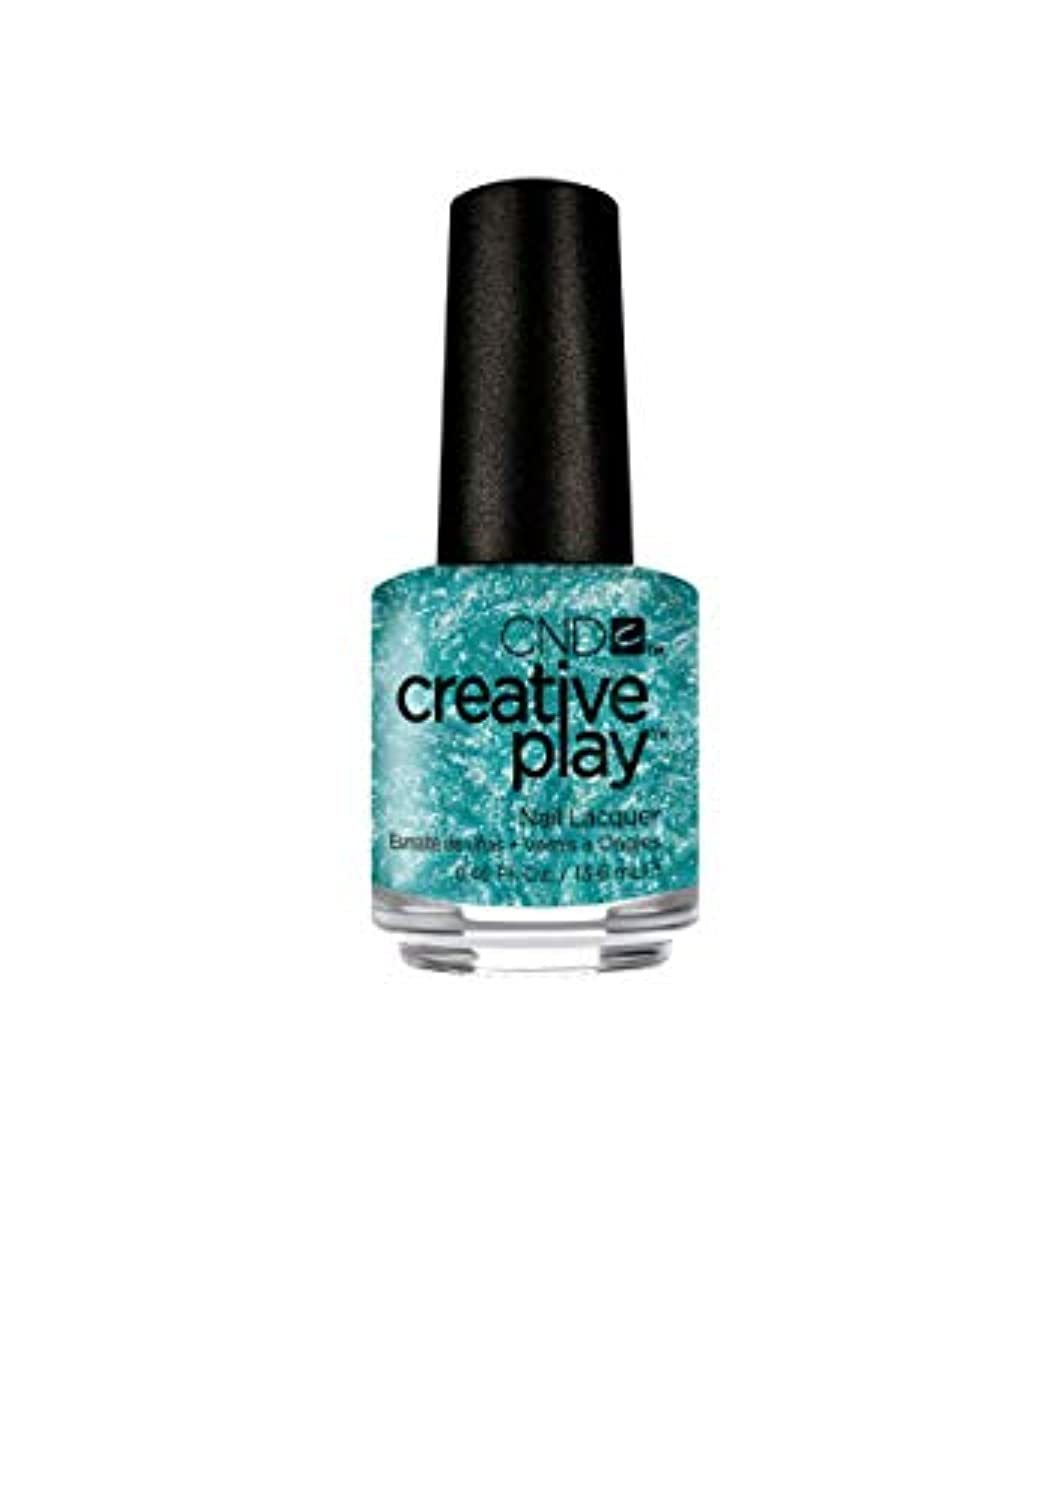 CND Creative Play Lacquer - Sea the Light - 0.46oz / 13.6ml